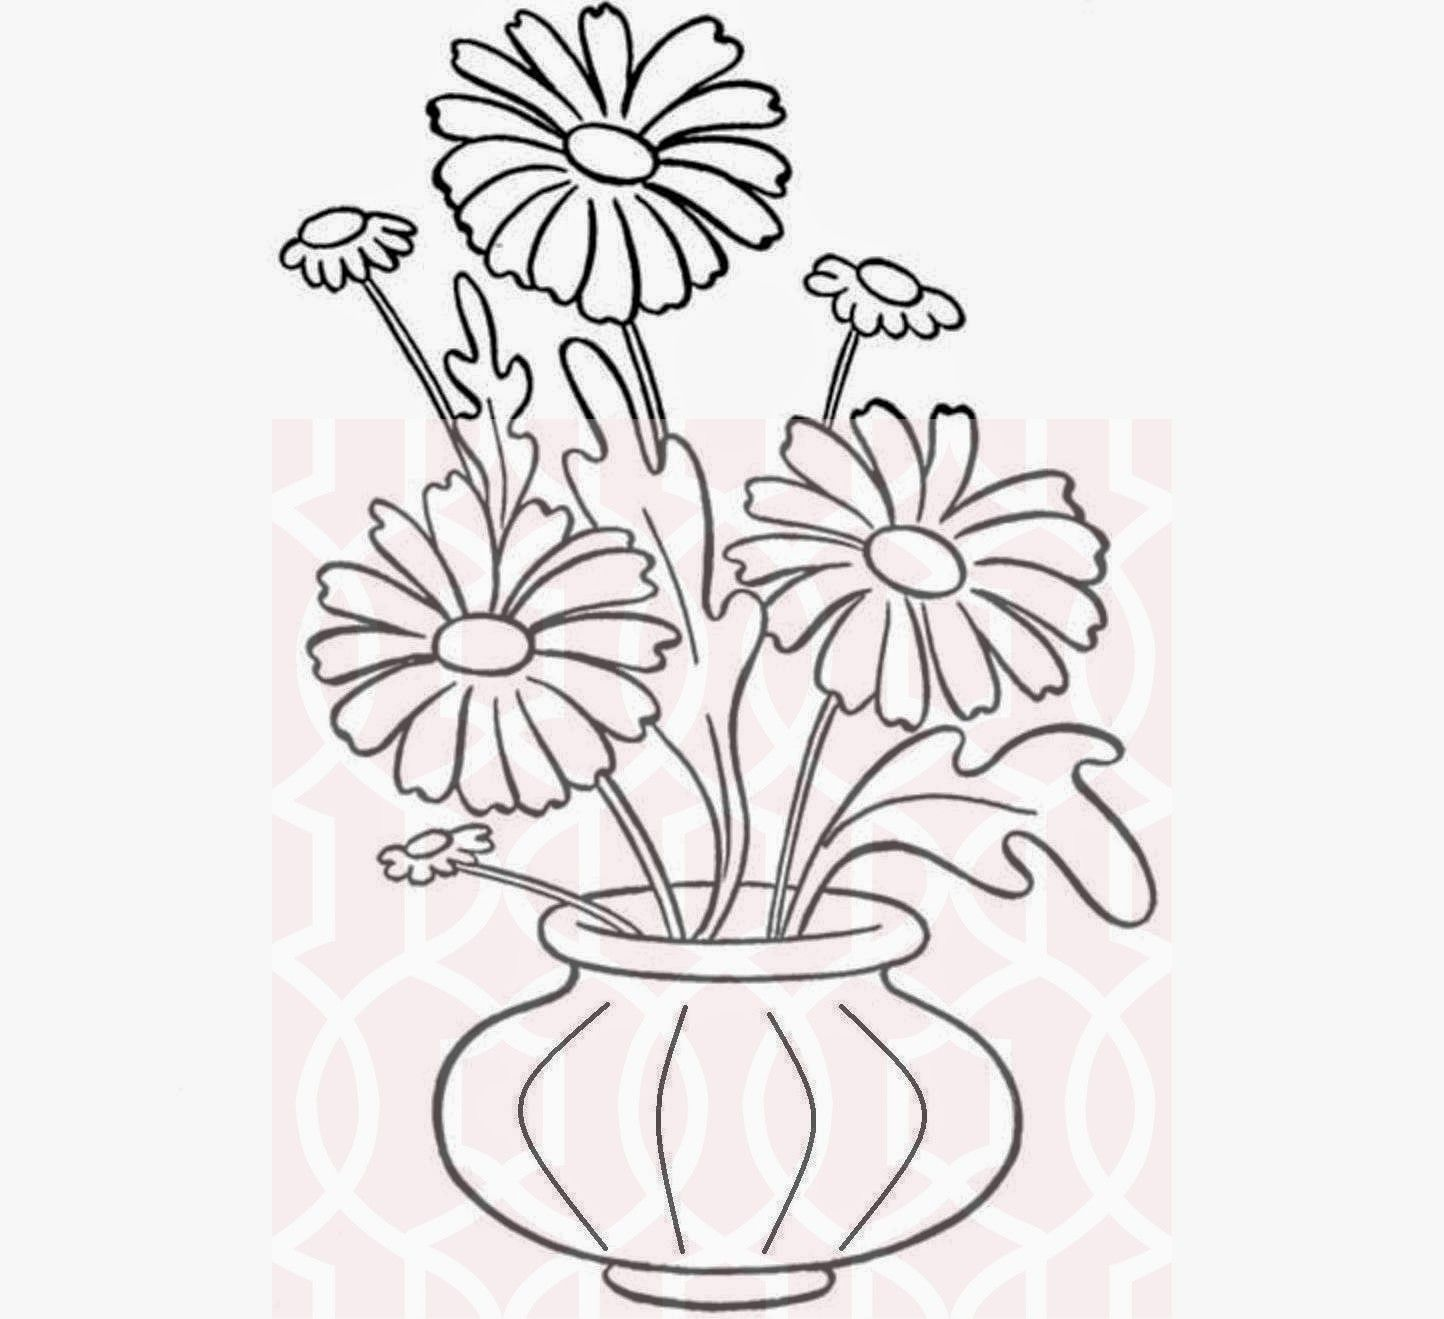 12 Uplifting Antique Vases Pink Roses Ideas Flower Drawing Cute Flower Drawing Pretty Flower Drawing